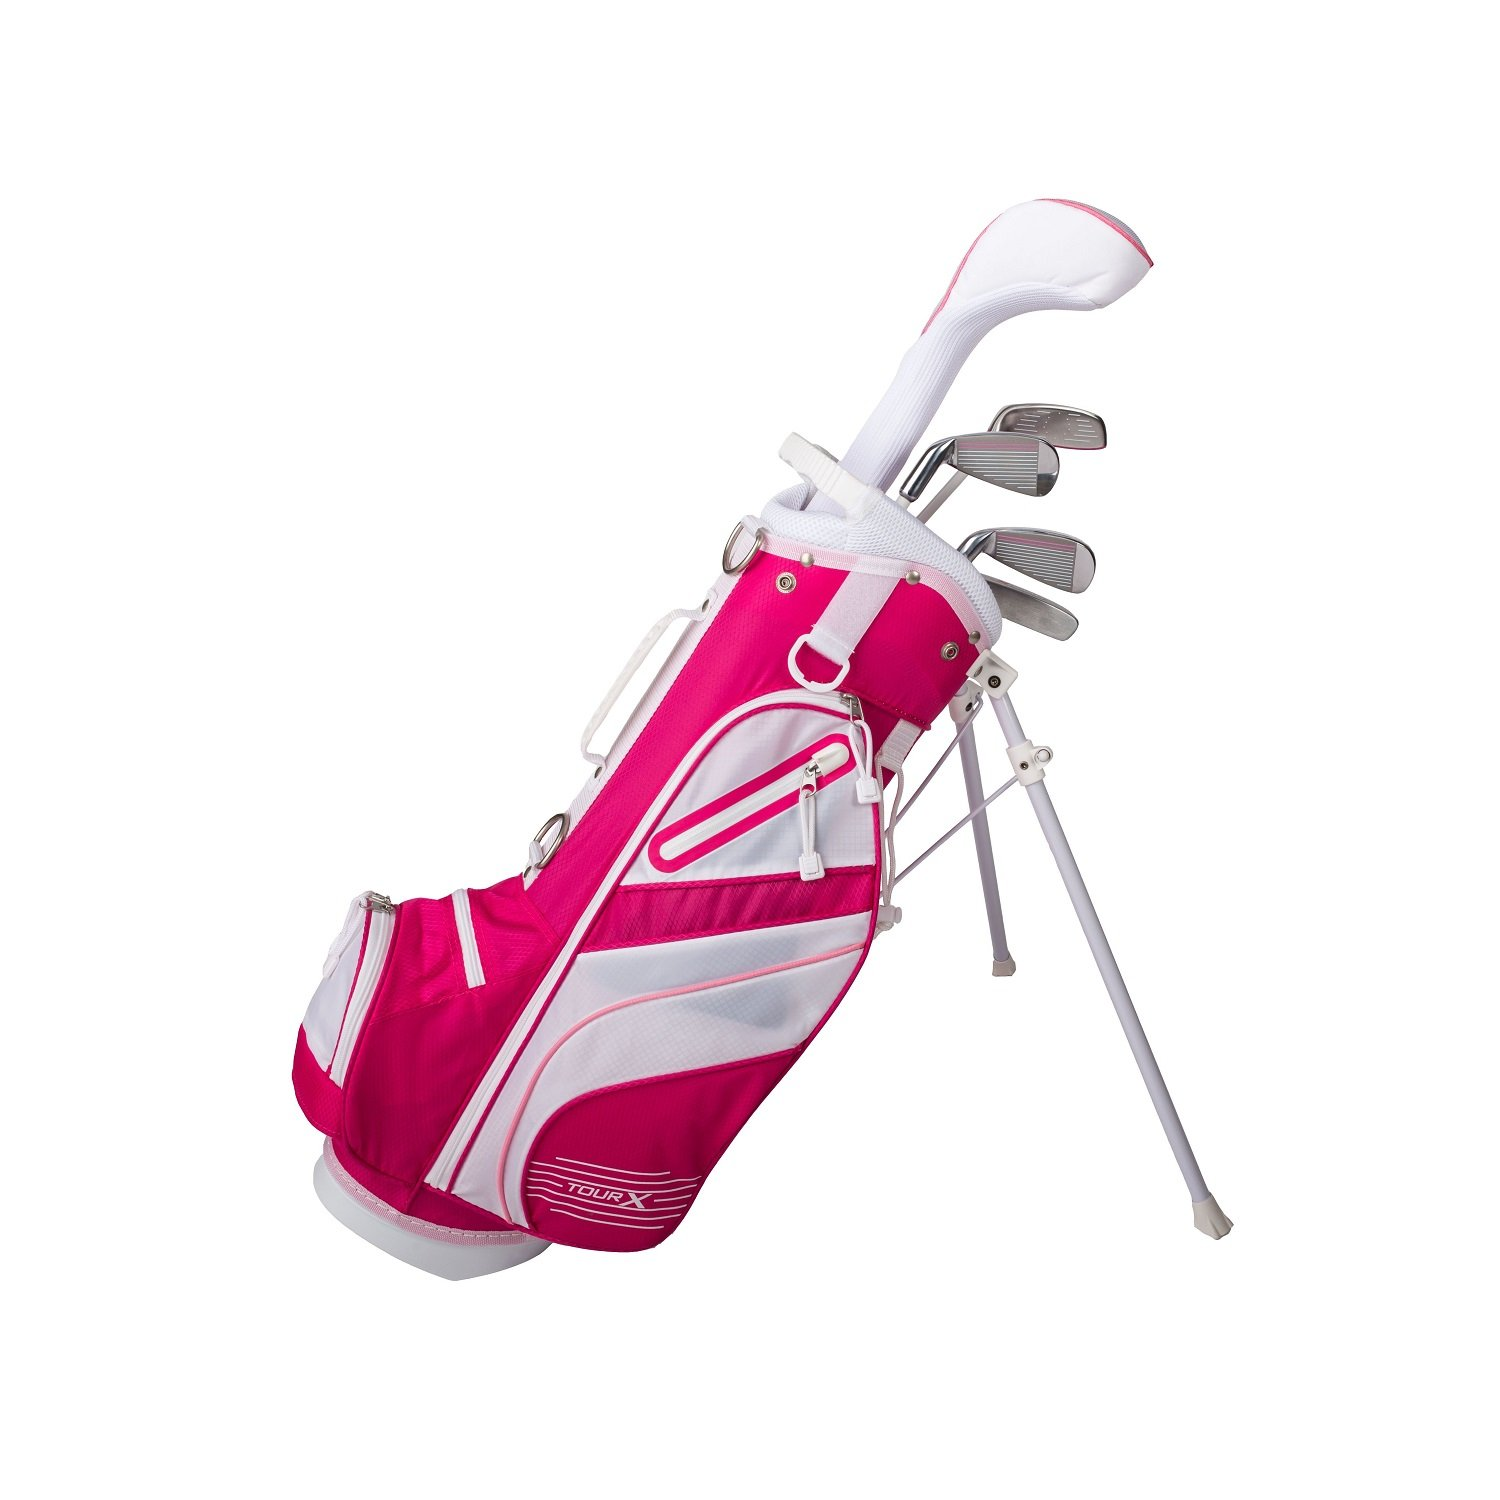 Tour 5pc Jr X Size Set 1 Pink 5pc Jr Golf Set w/Stand Bag [並行輸入品] B07CWPVBND, 収納雑貨ツエッペ:b613a988 --- cooleycoastrun.com